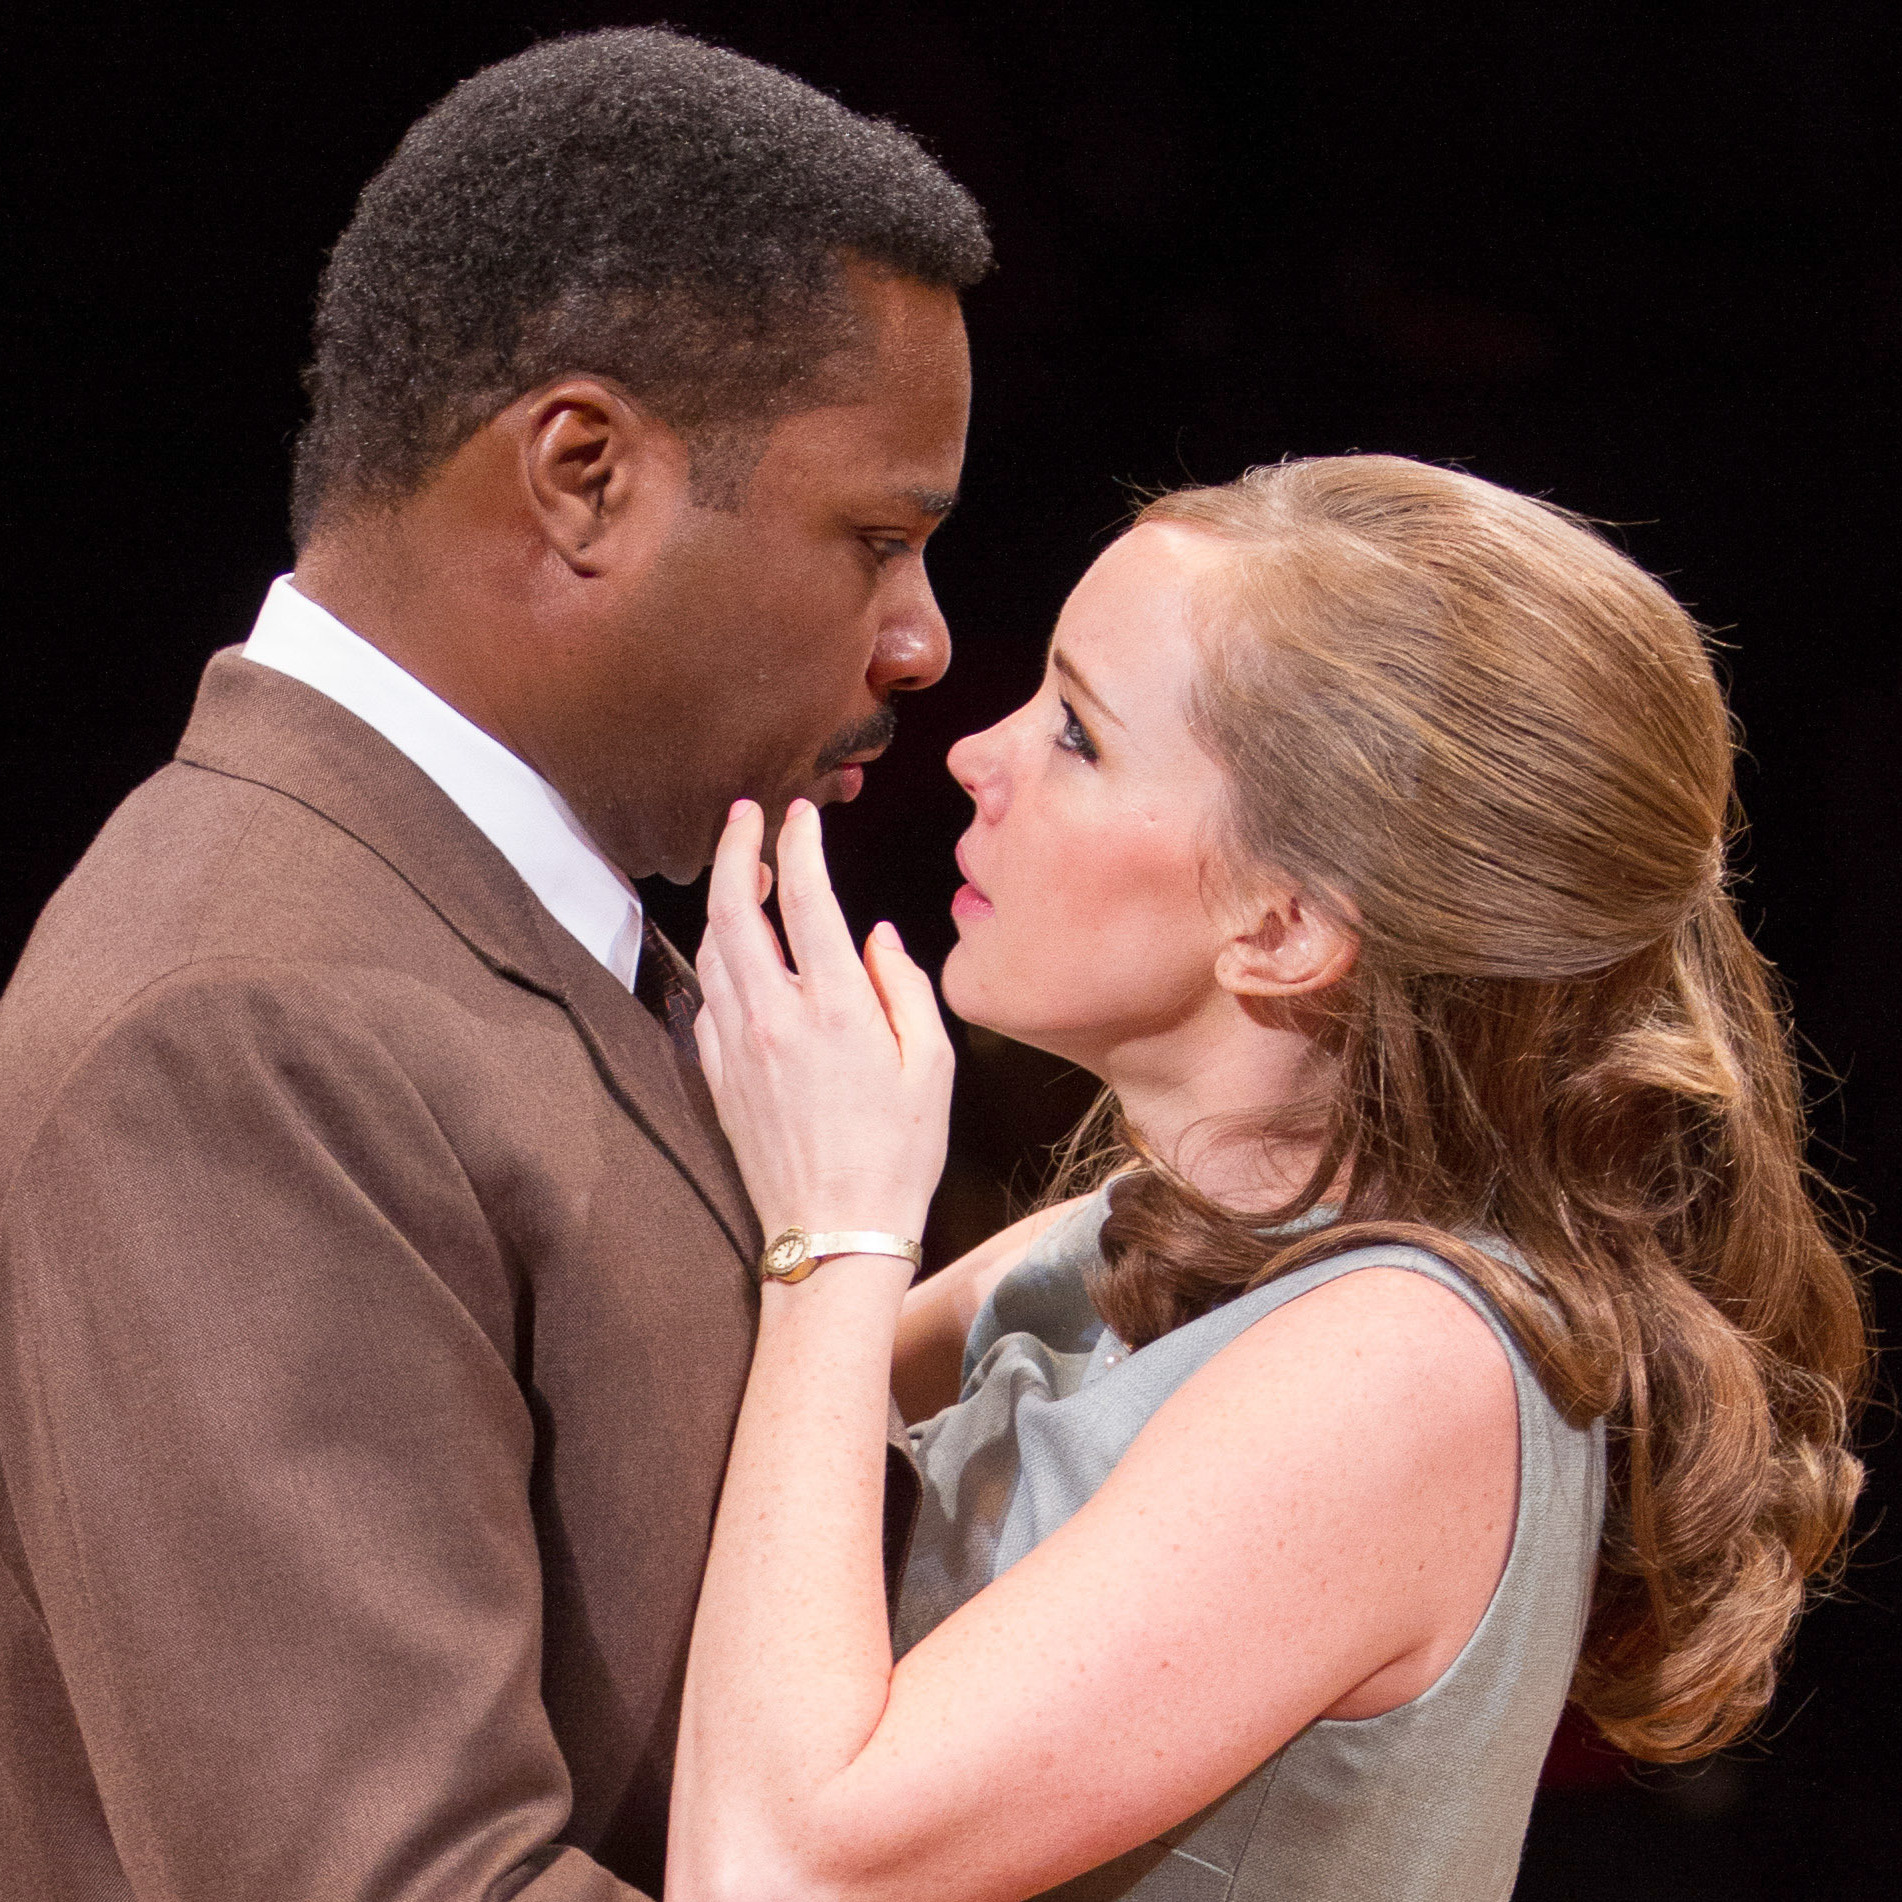 Malcolm-Jamal Warner plays Dr. John Prentice and Bethany Anne Lind plays Joanna Drayton in a new production of Guess Who's Coming to Dinner. Warner says the 1967 film had to treat the subject matter lightly, but that this staging delves deeper into the characters' emotions.